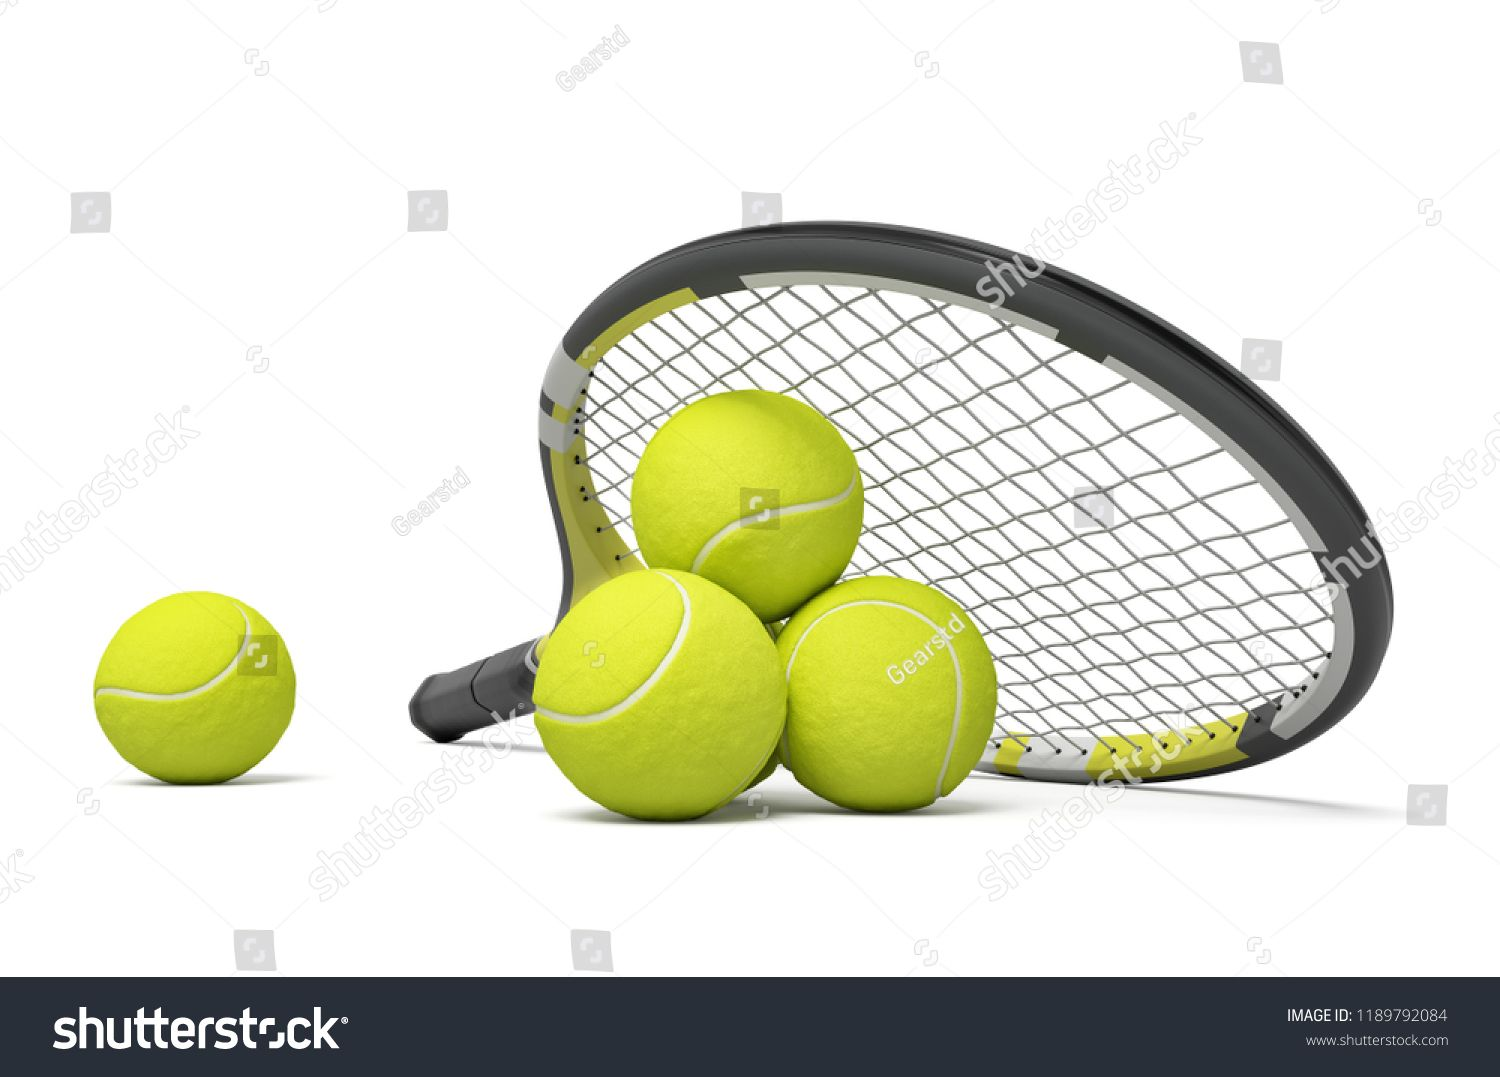 3d Rendering Single Tennis Racquet Lying Royalty Free Image Illustration In 2020 Tennis Racquet Racquets Tennis